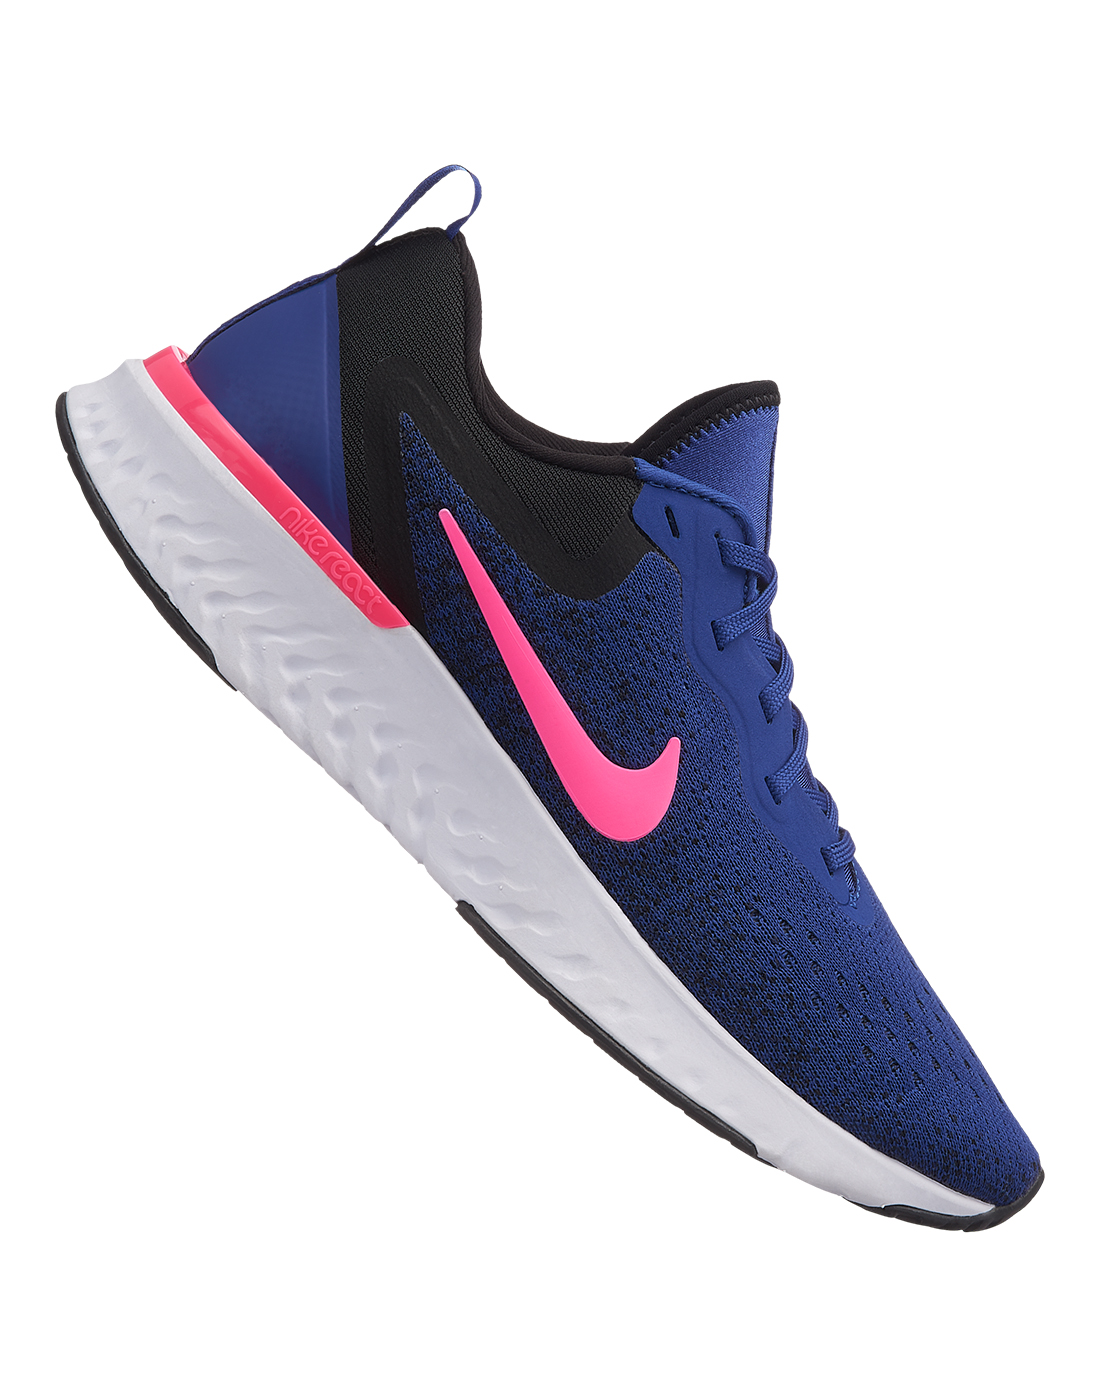 241c23c2030e Womens Odyssey React · Womens Odyssey React. FOR RUNNING